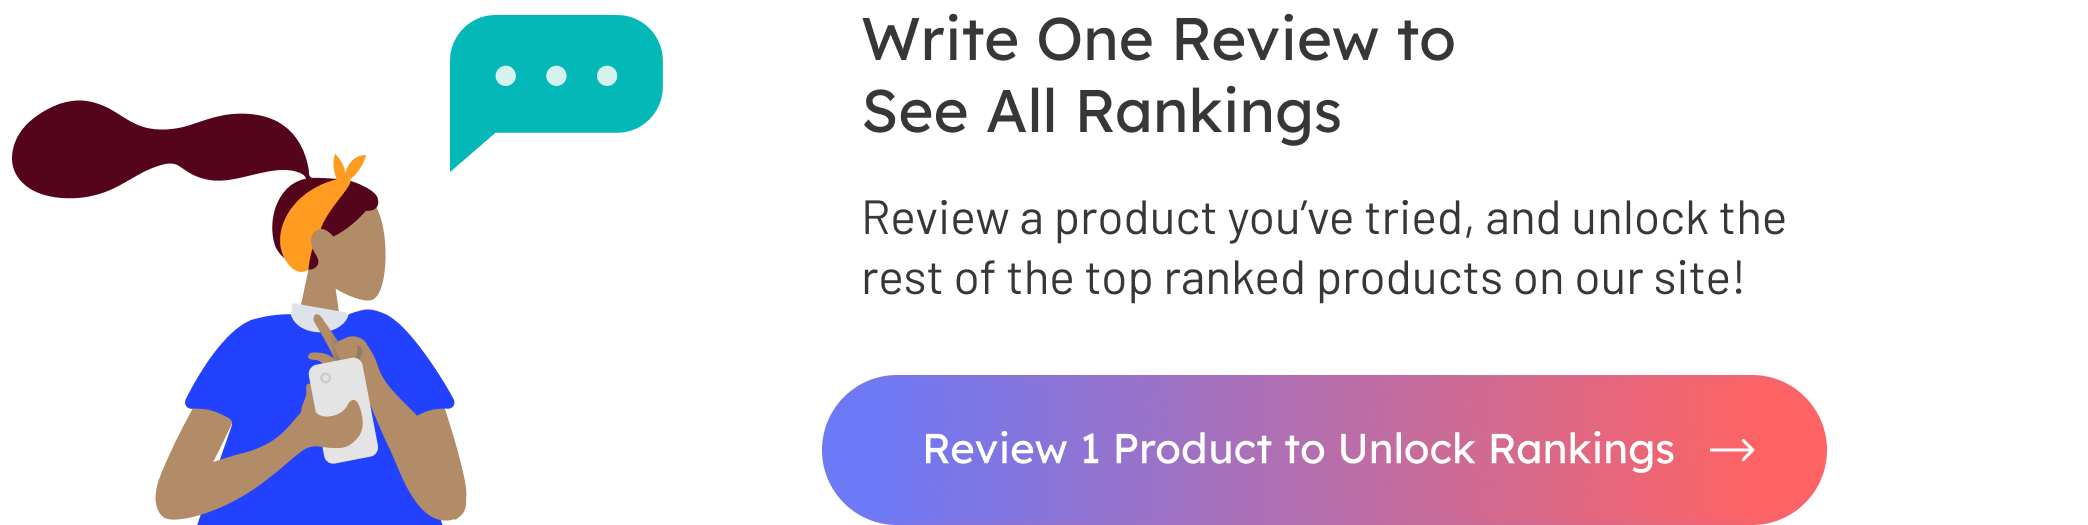 Write One Review to See All Rankings